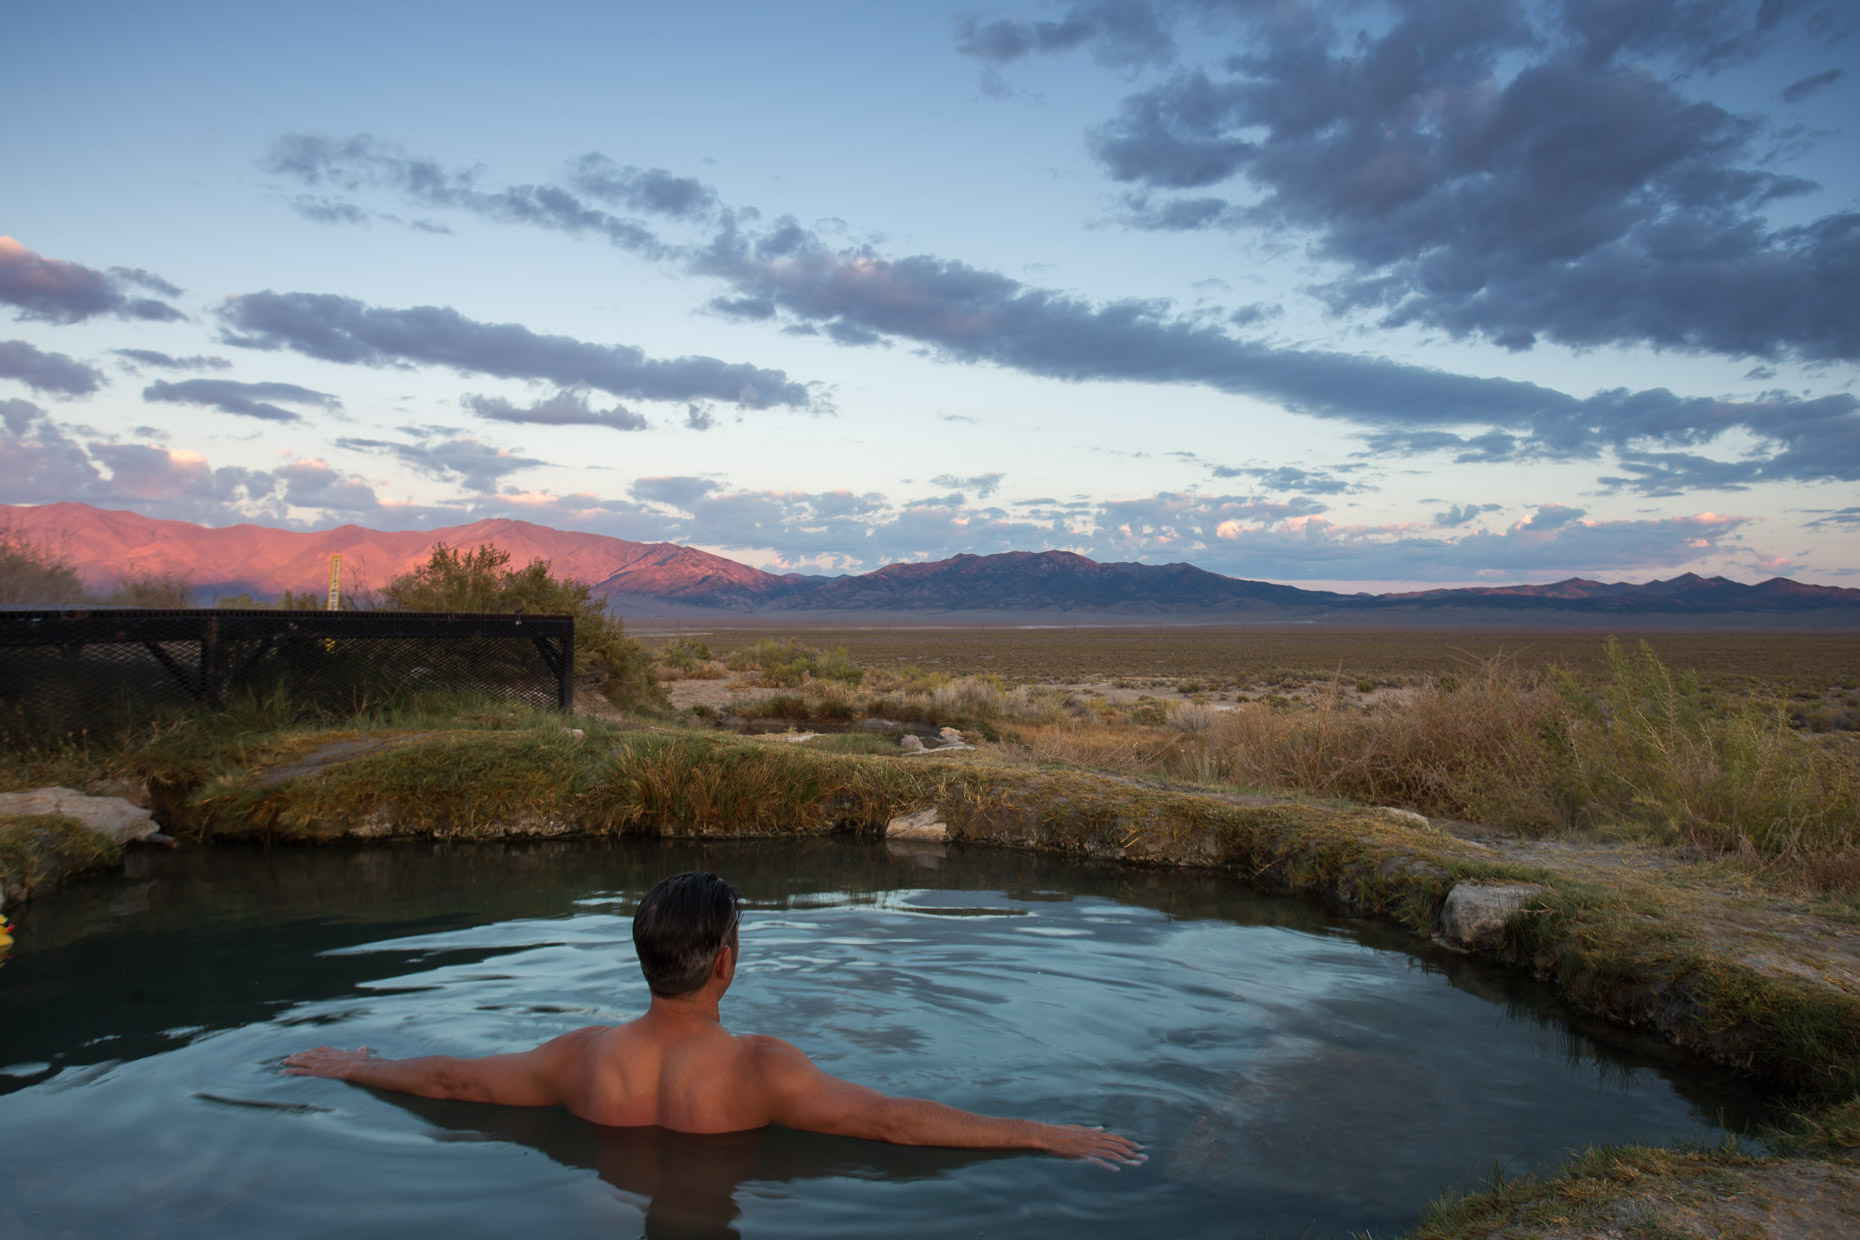 Man in hot springs at sunrise